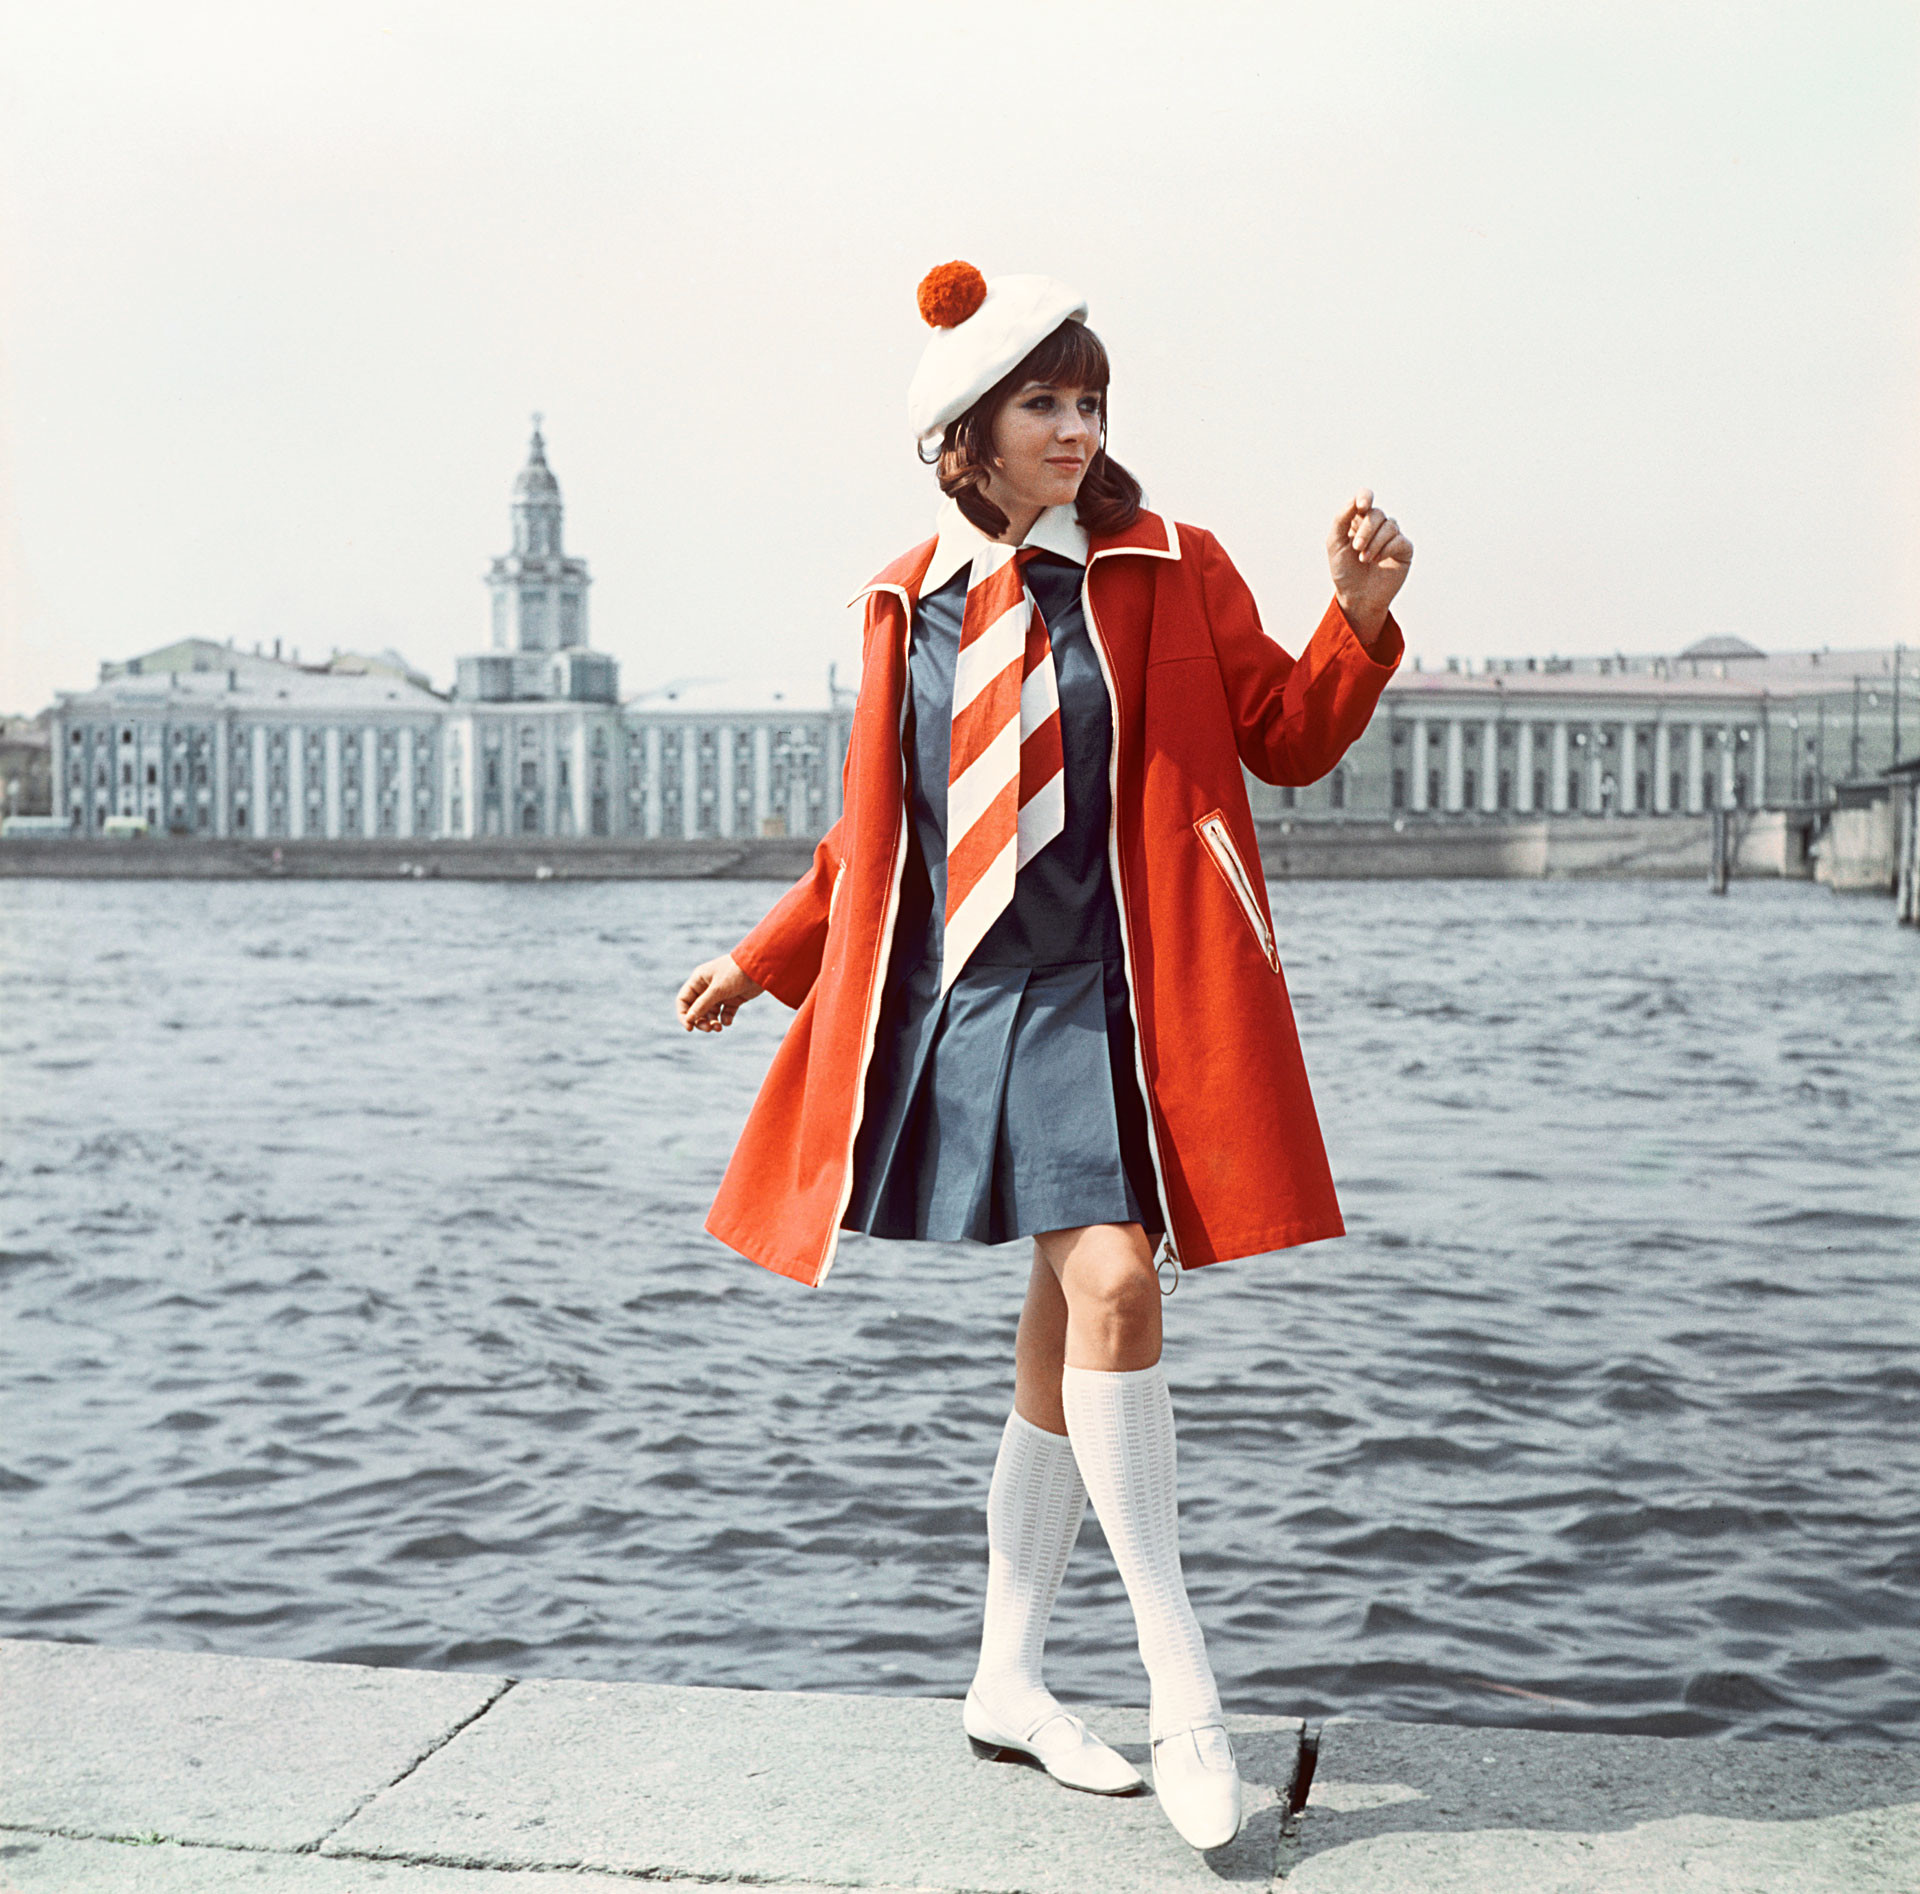 Raincoat with zipper and dress with bright tie, 1968